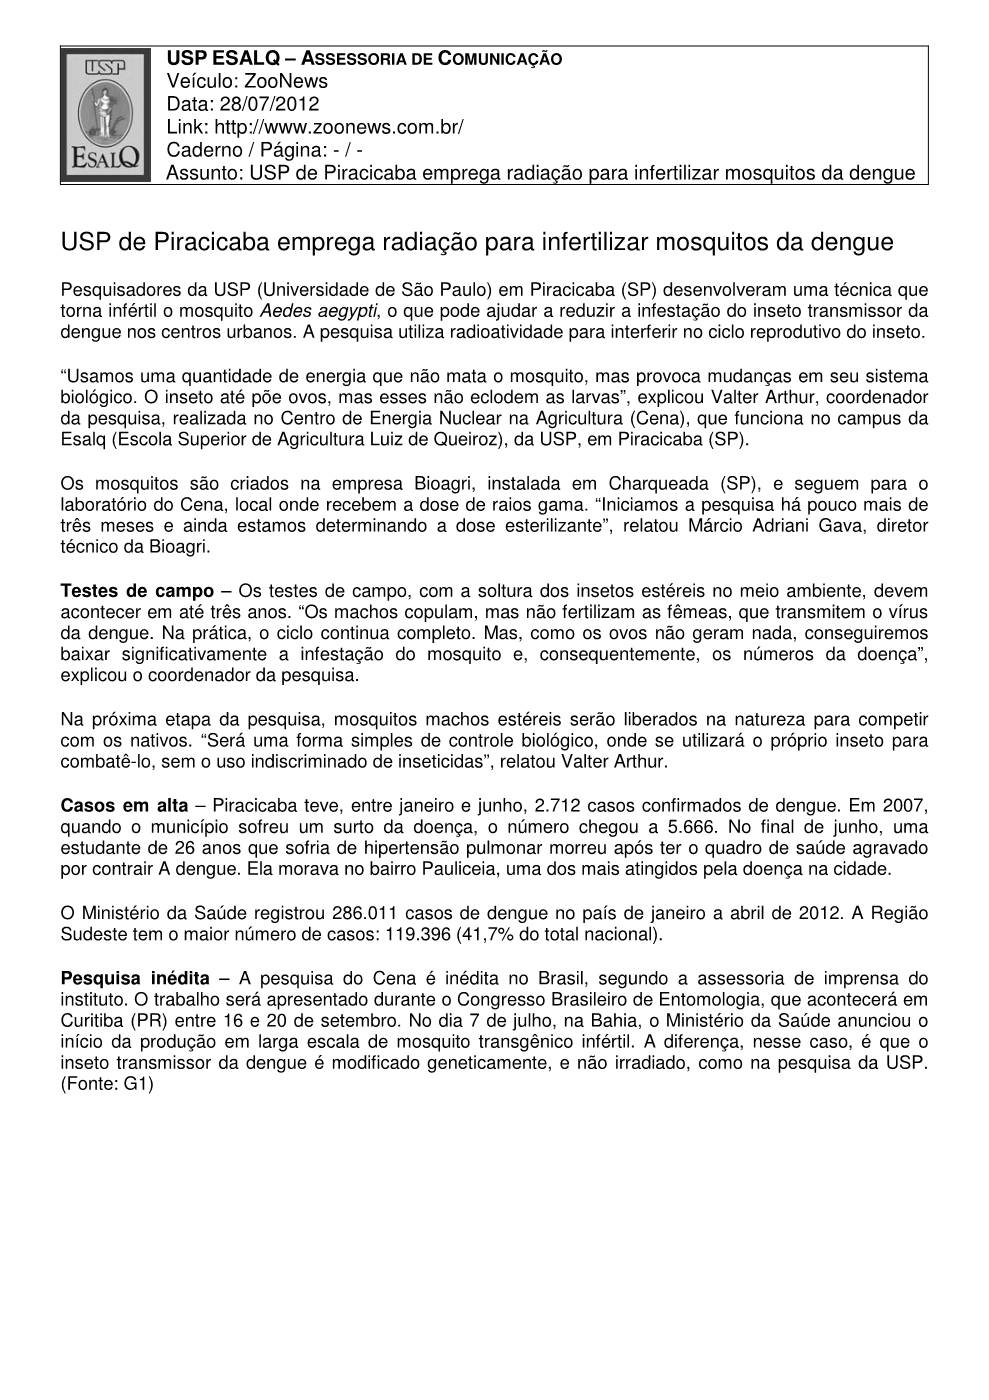 Index of /acom2/clipping_semanal/2012/8agosto/28_a_03/files